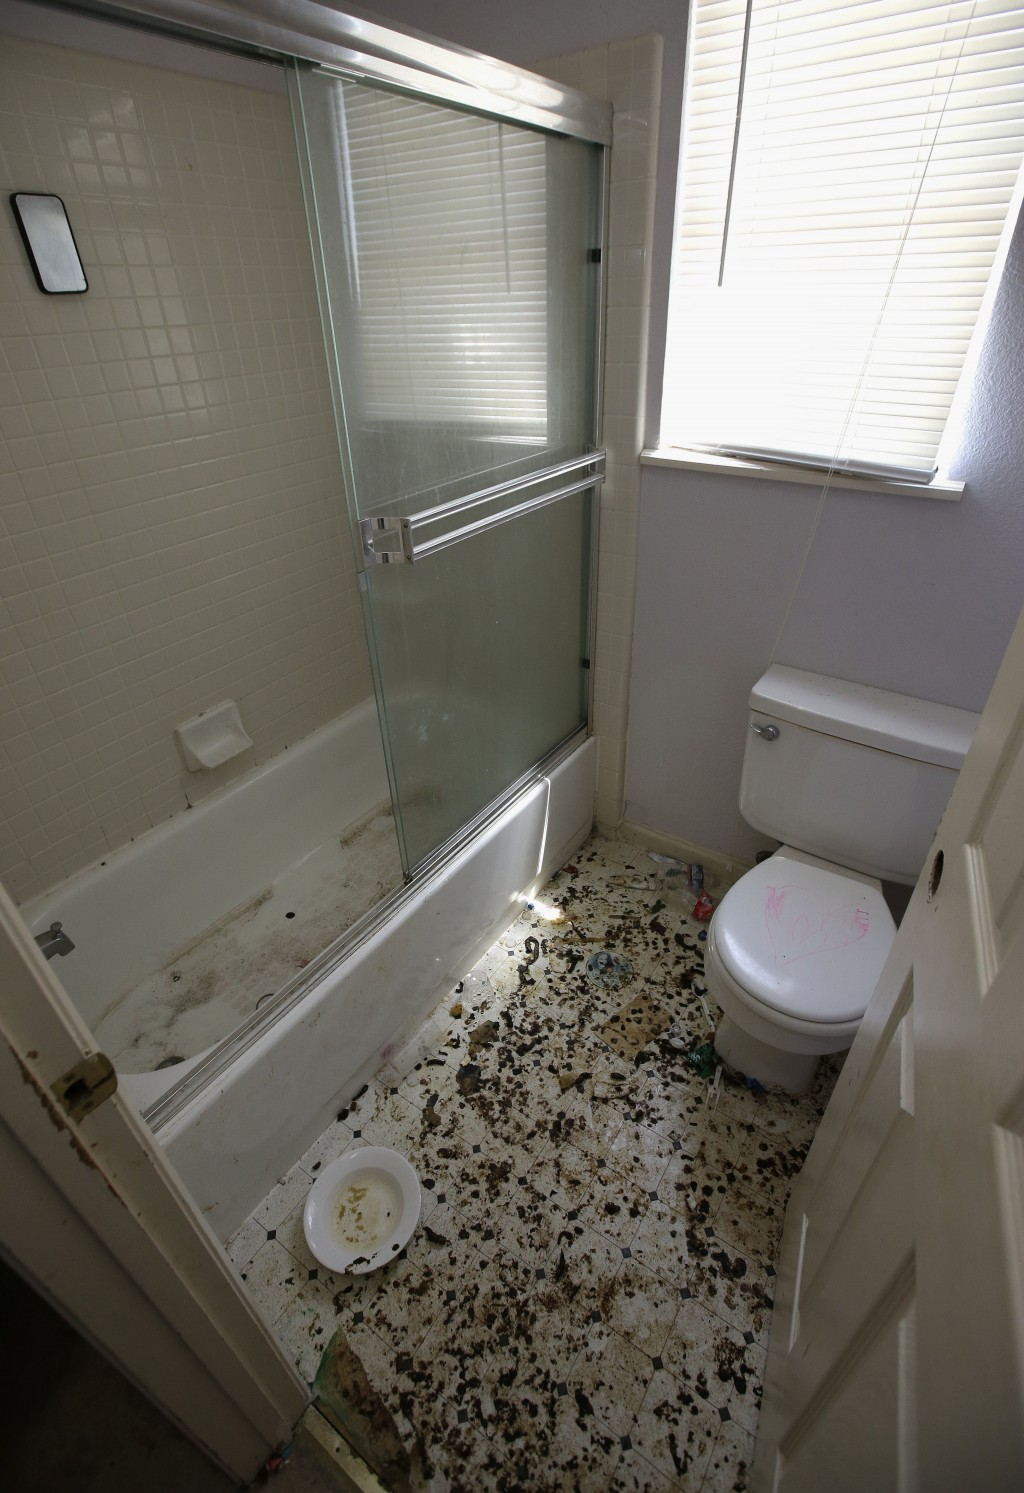 The bathroom is strewn with feces at a home in Fairfield, Calif., Monday, May 14, 2018, where authorities removed 10 children and charged their father